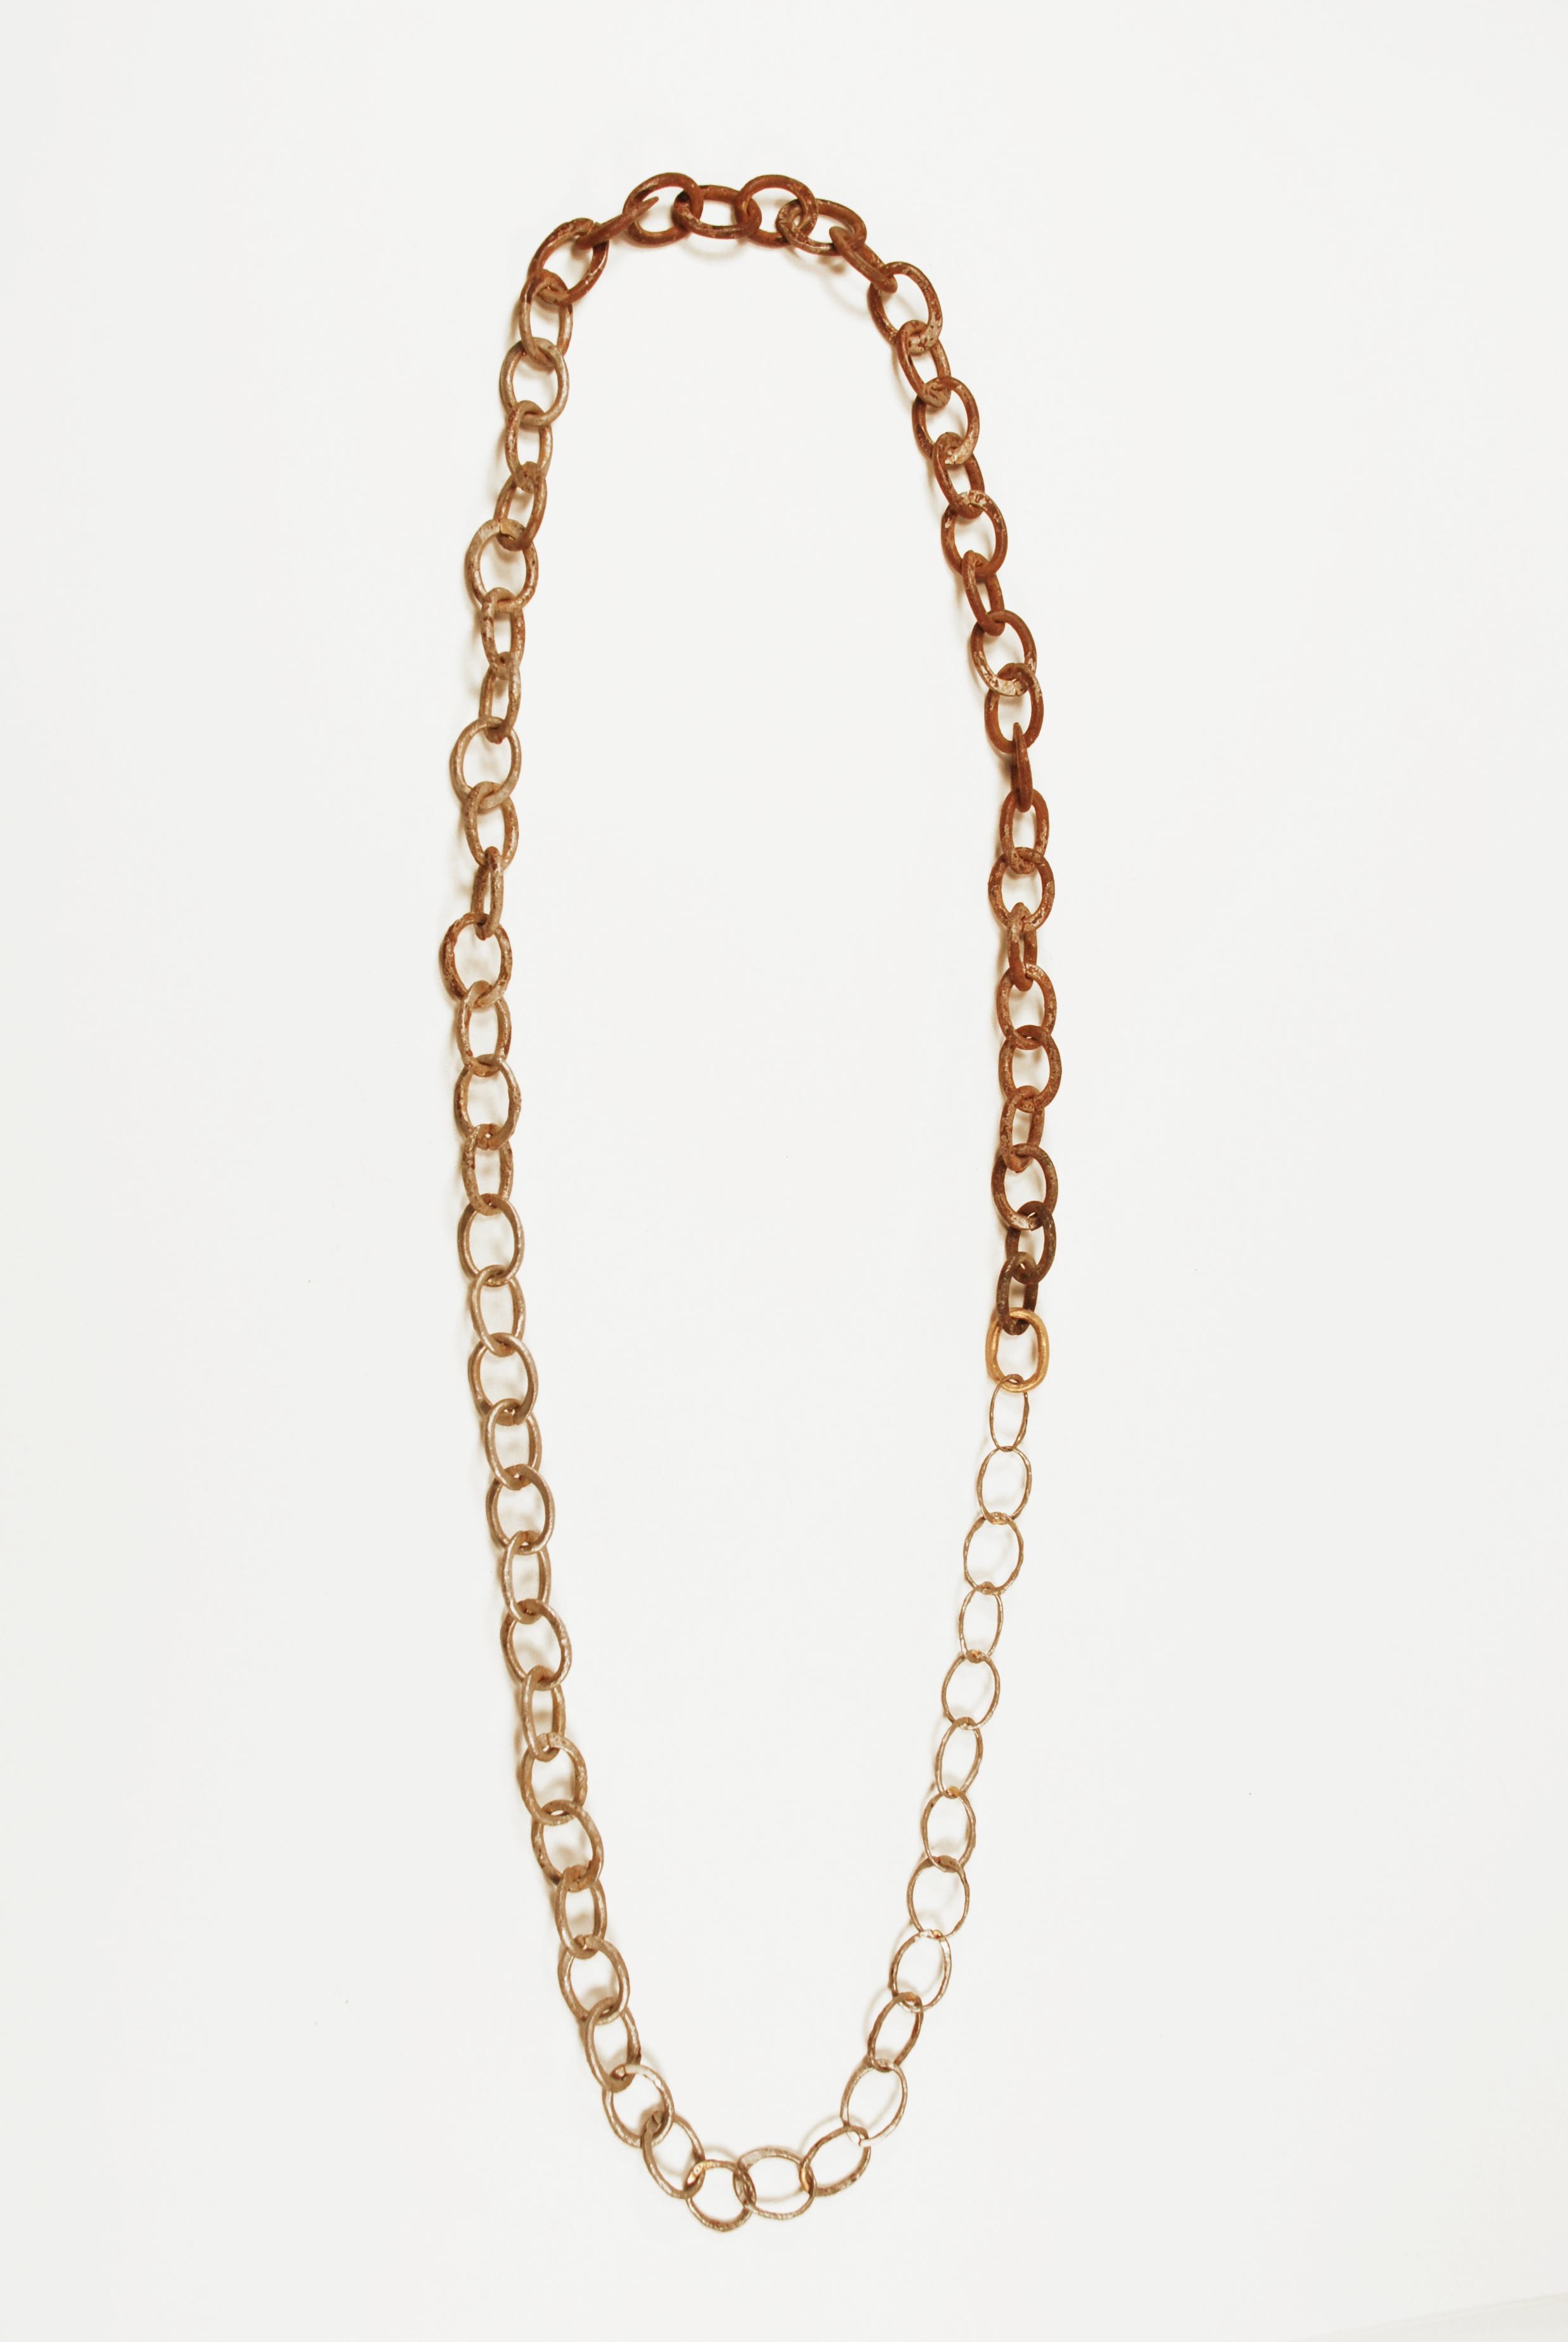 FADE, chain-linked necklace